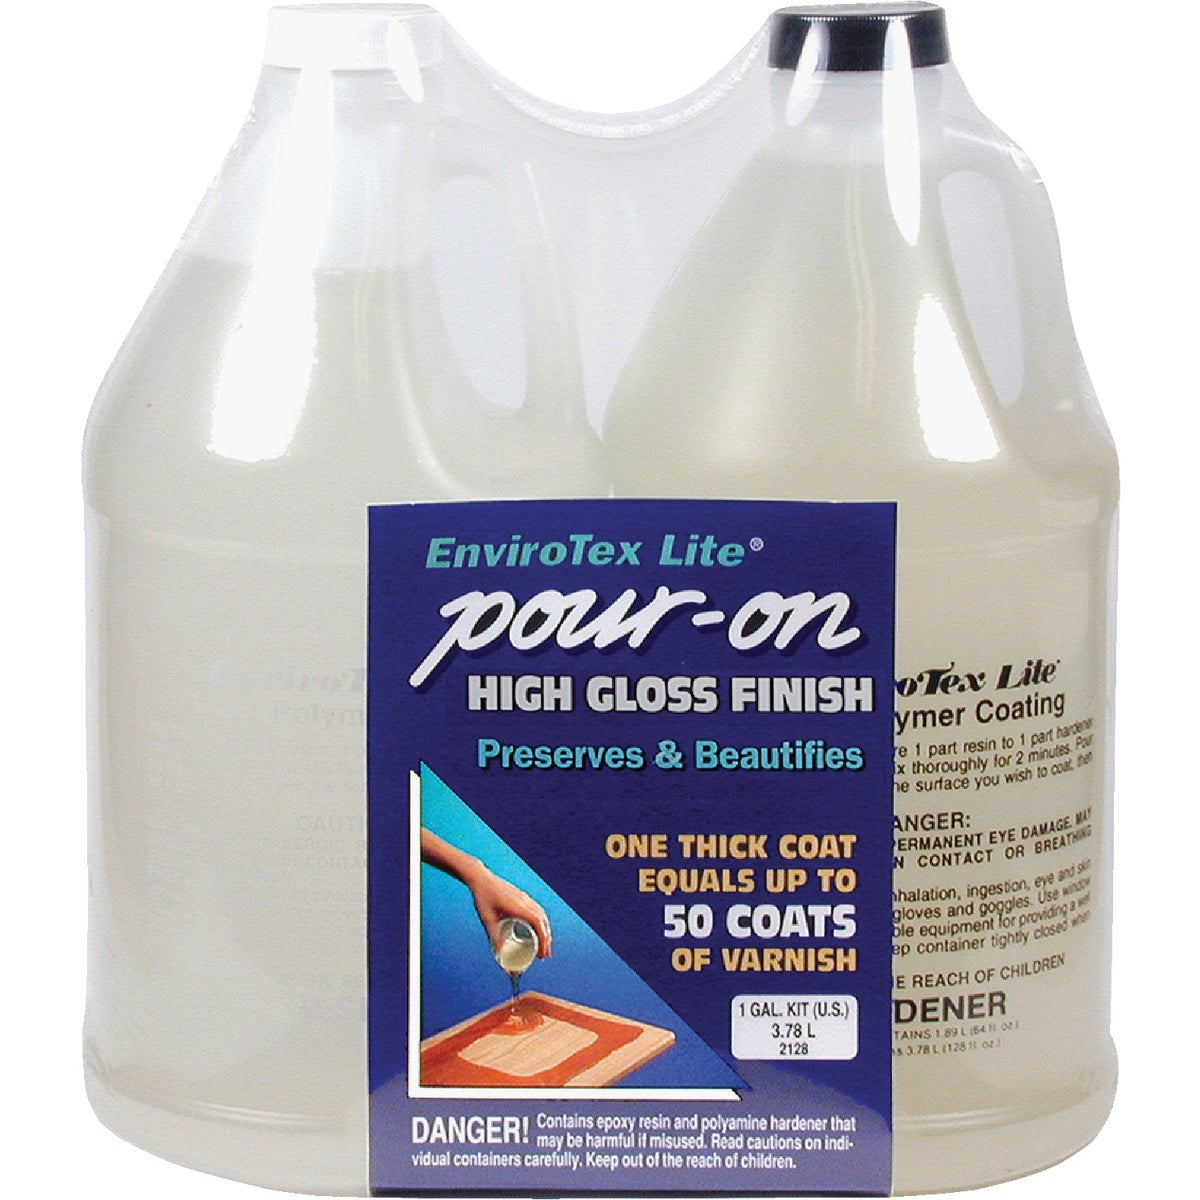 GL CLEAR POUR-ON FINISH